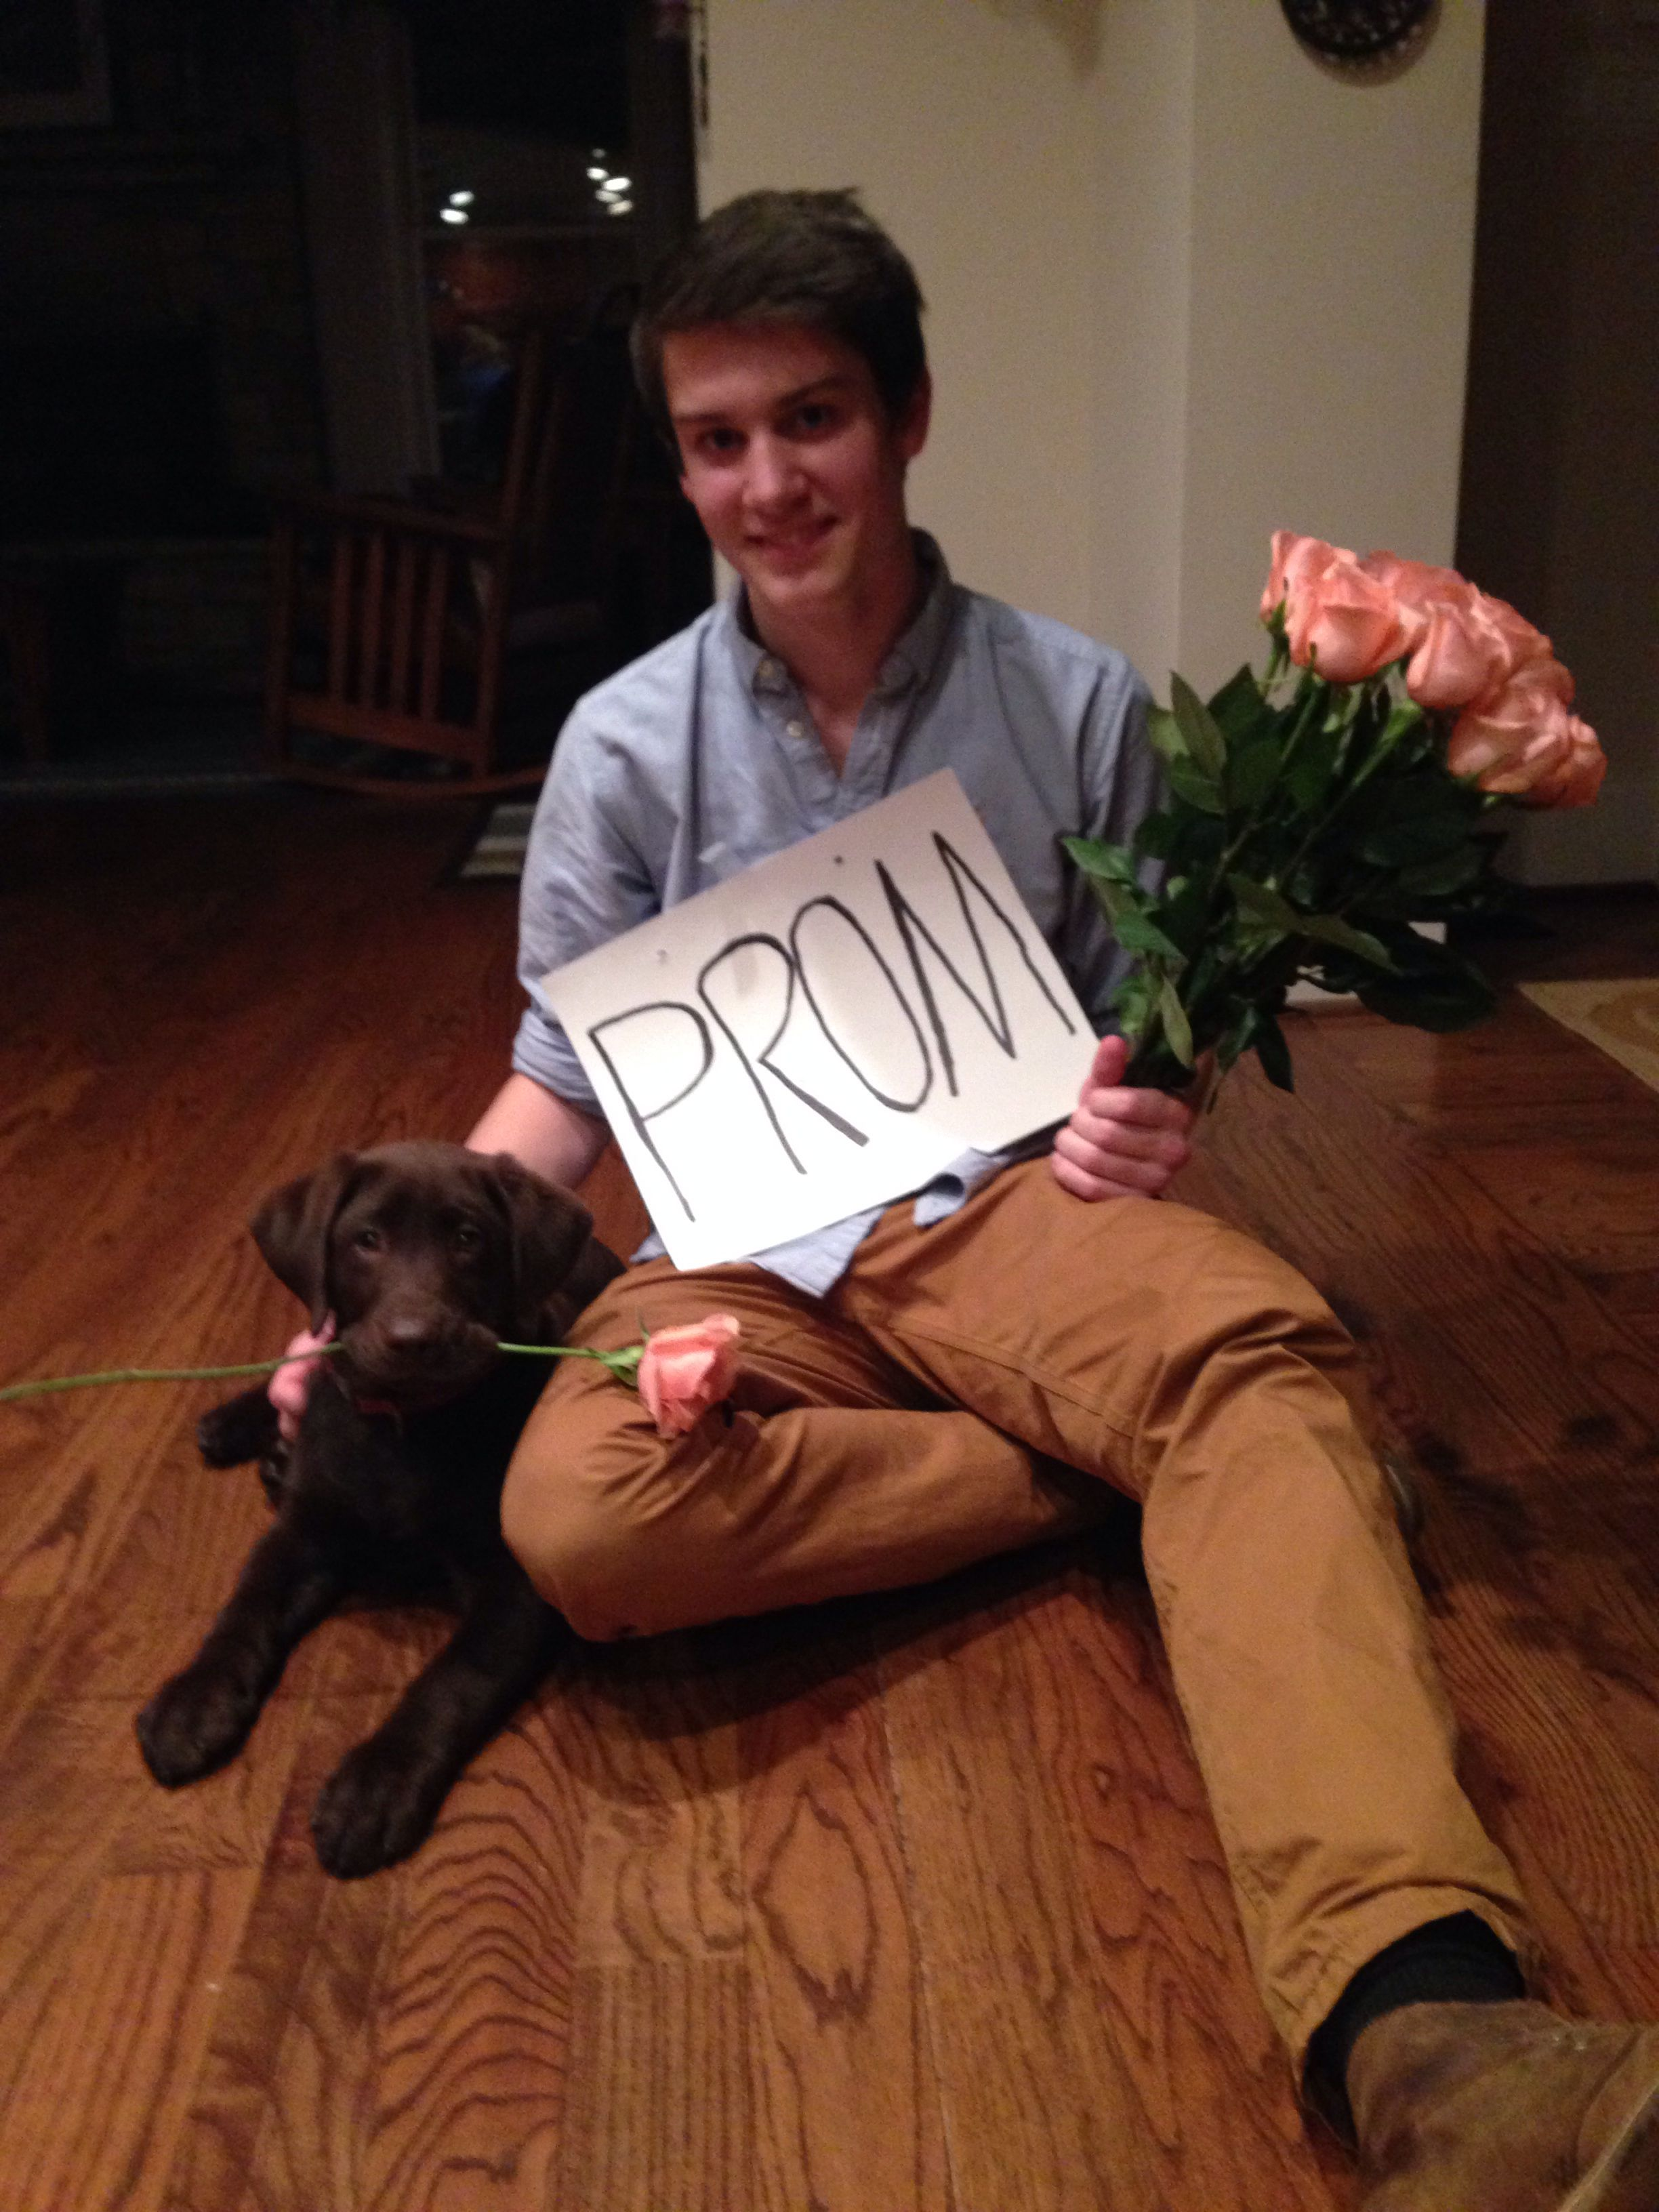 This Is How My Friend Got Asked To Prom Promposals